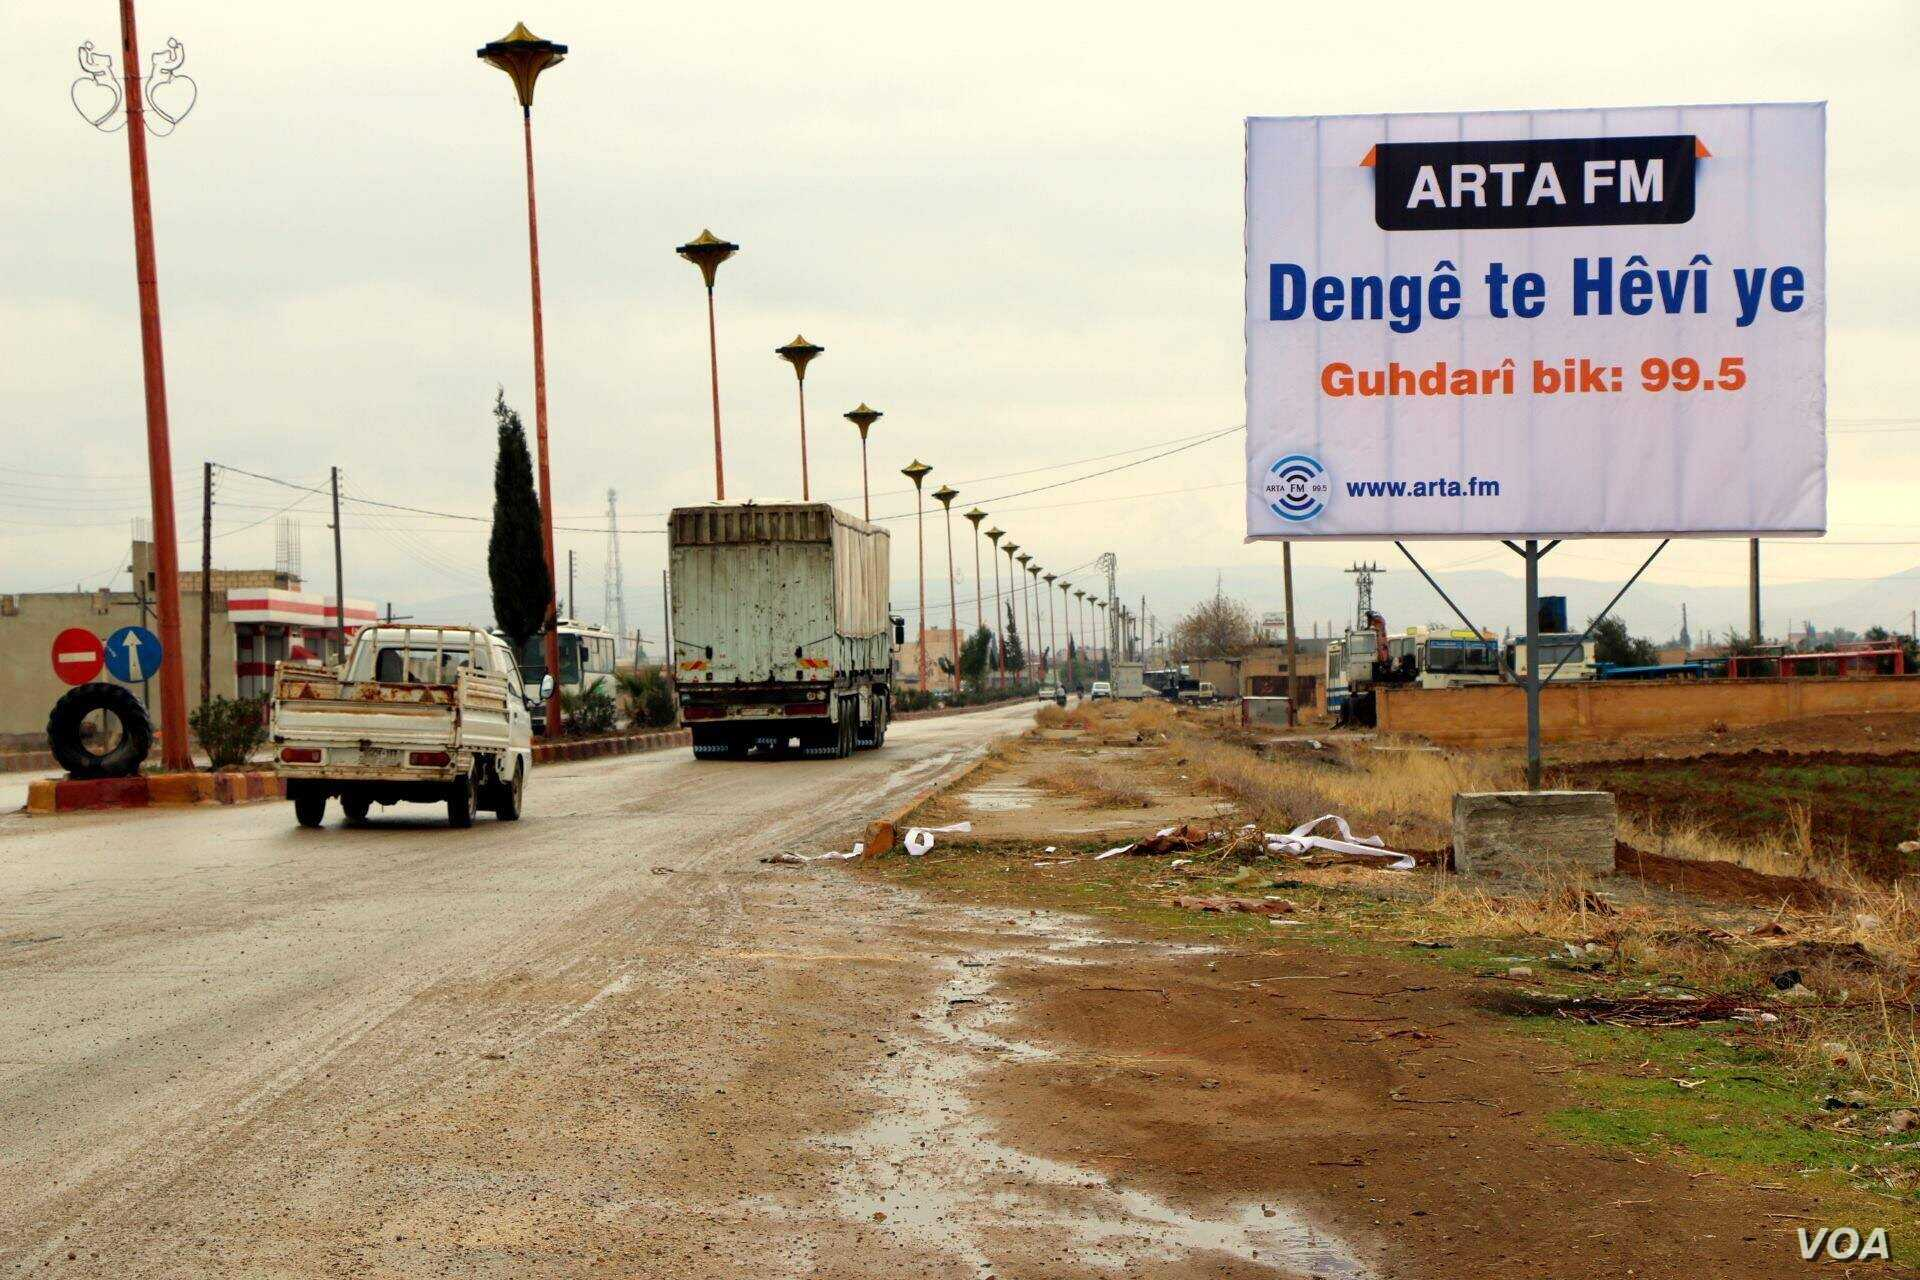 """A billboard reads """"Your voice is hope"""" at the entrance of Amude."""